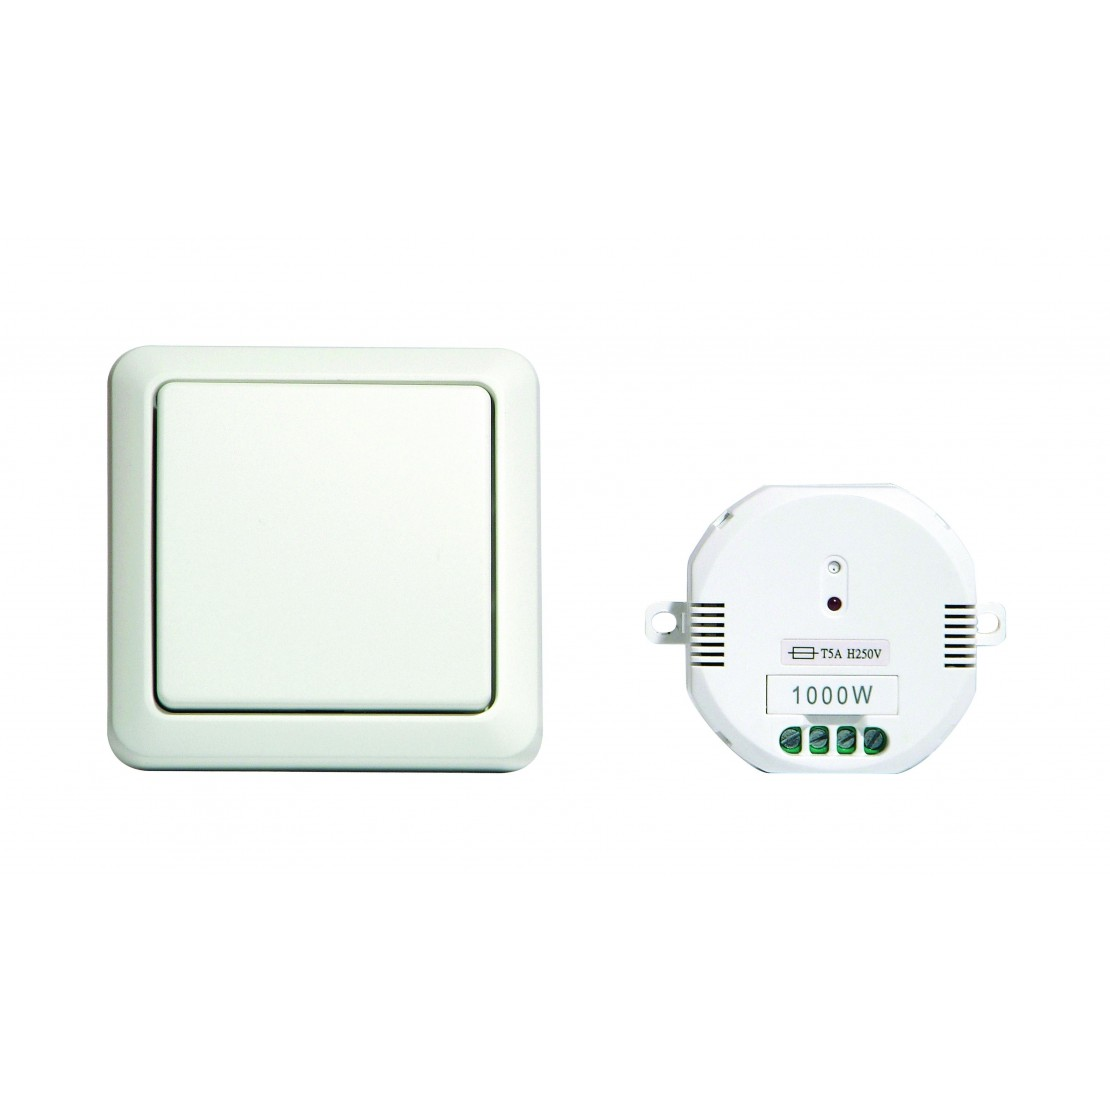 Interruptor inalámbrico + Módulo On/Off(blanco, 1000W)